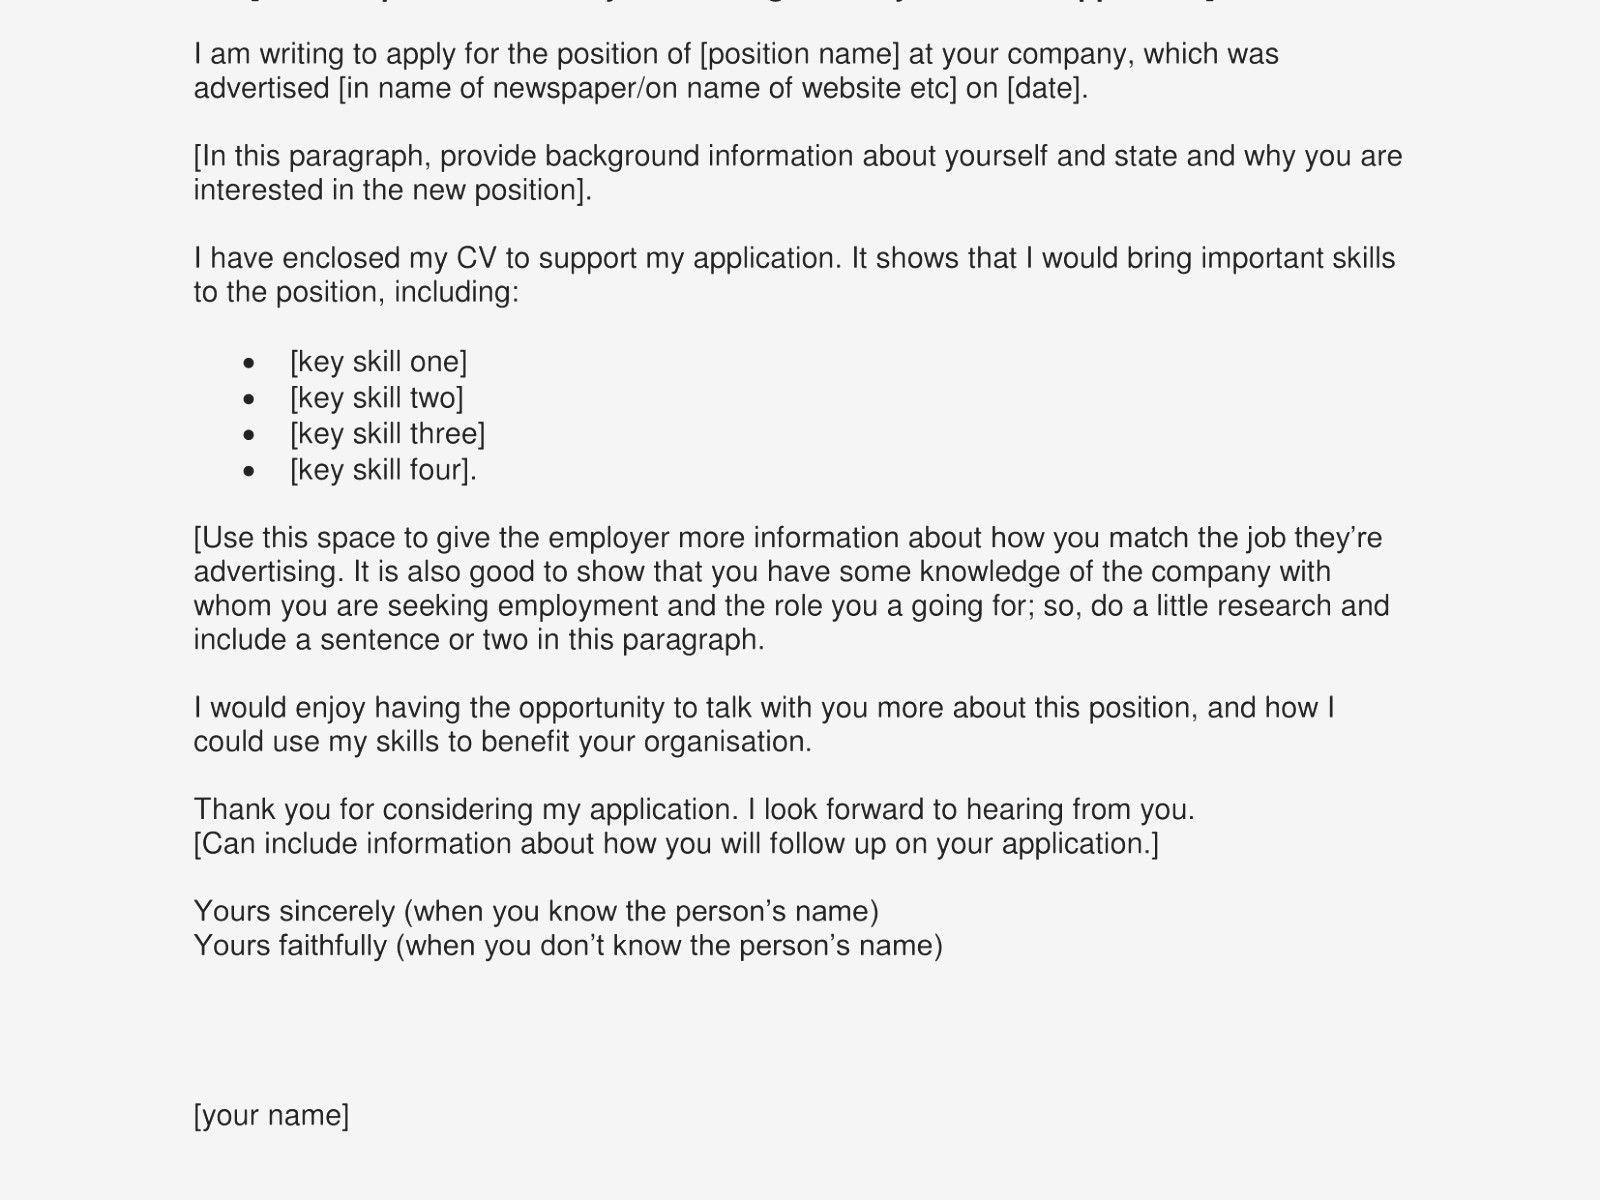 download new sample letter job application lettersample  a of cv for example word document career objective cs engineer